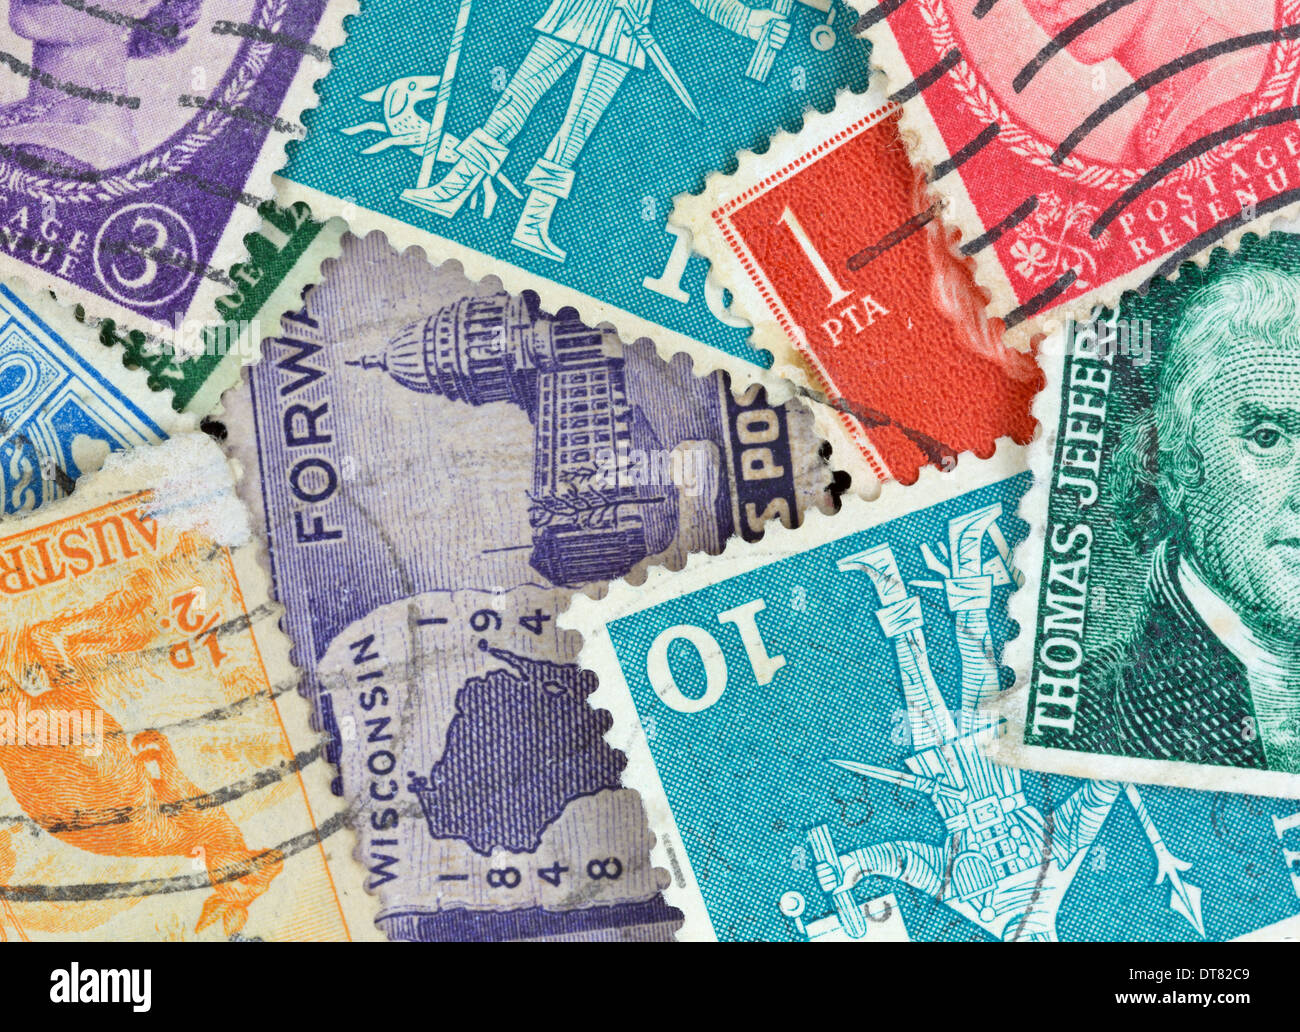 A very close view of several canceled vintage postage stamps. - Stock Image